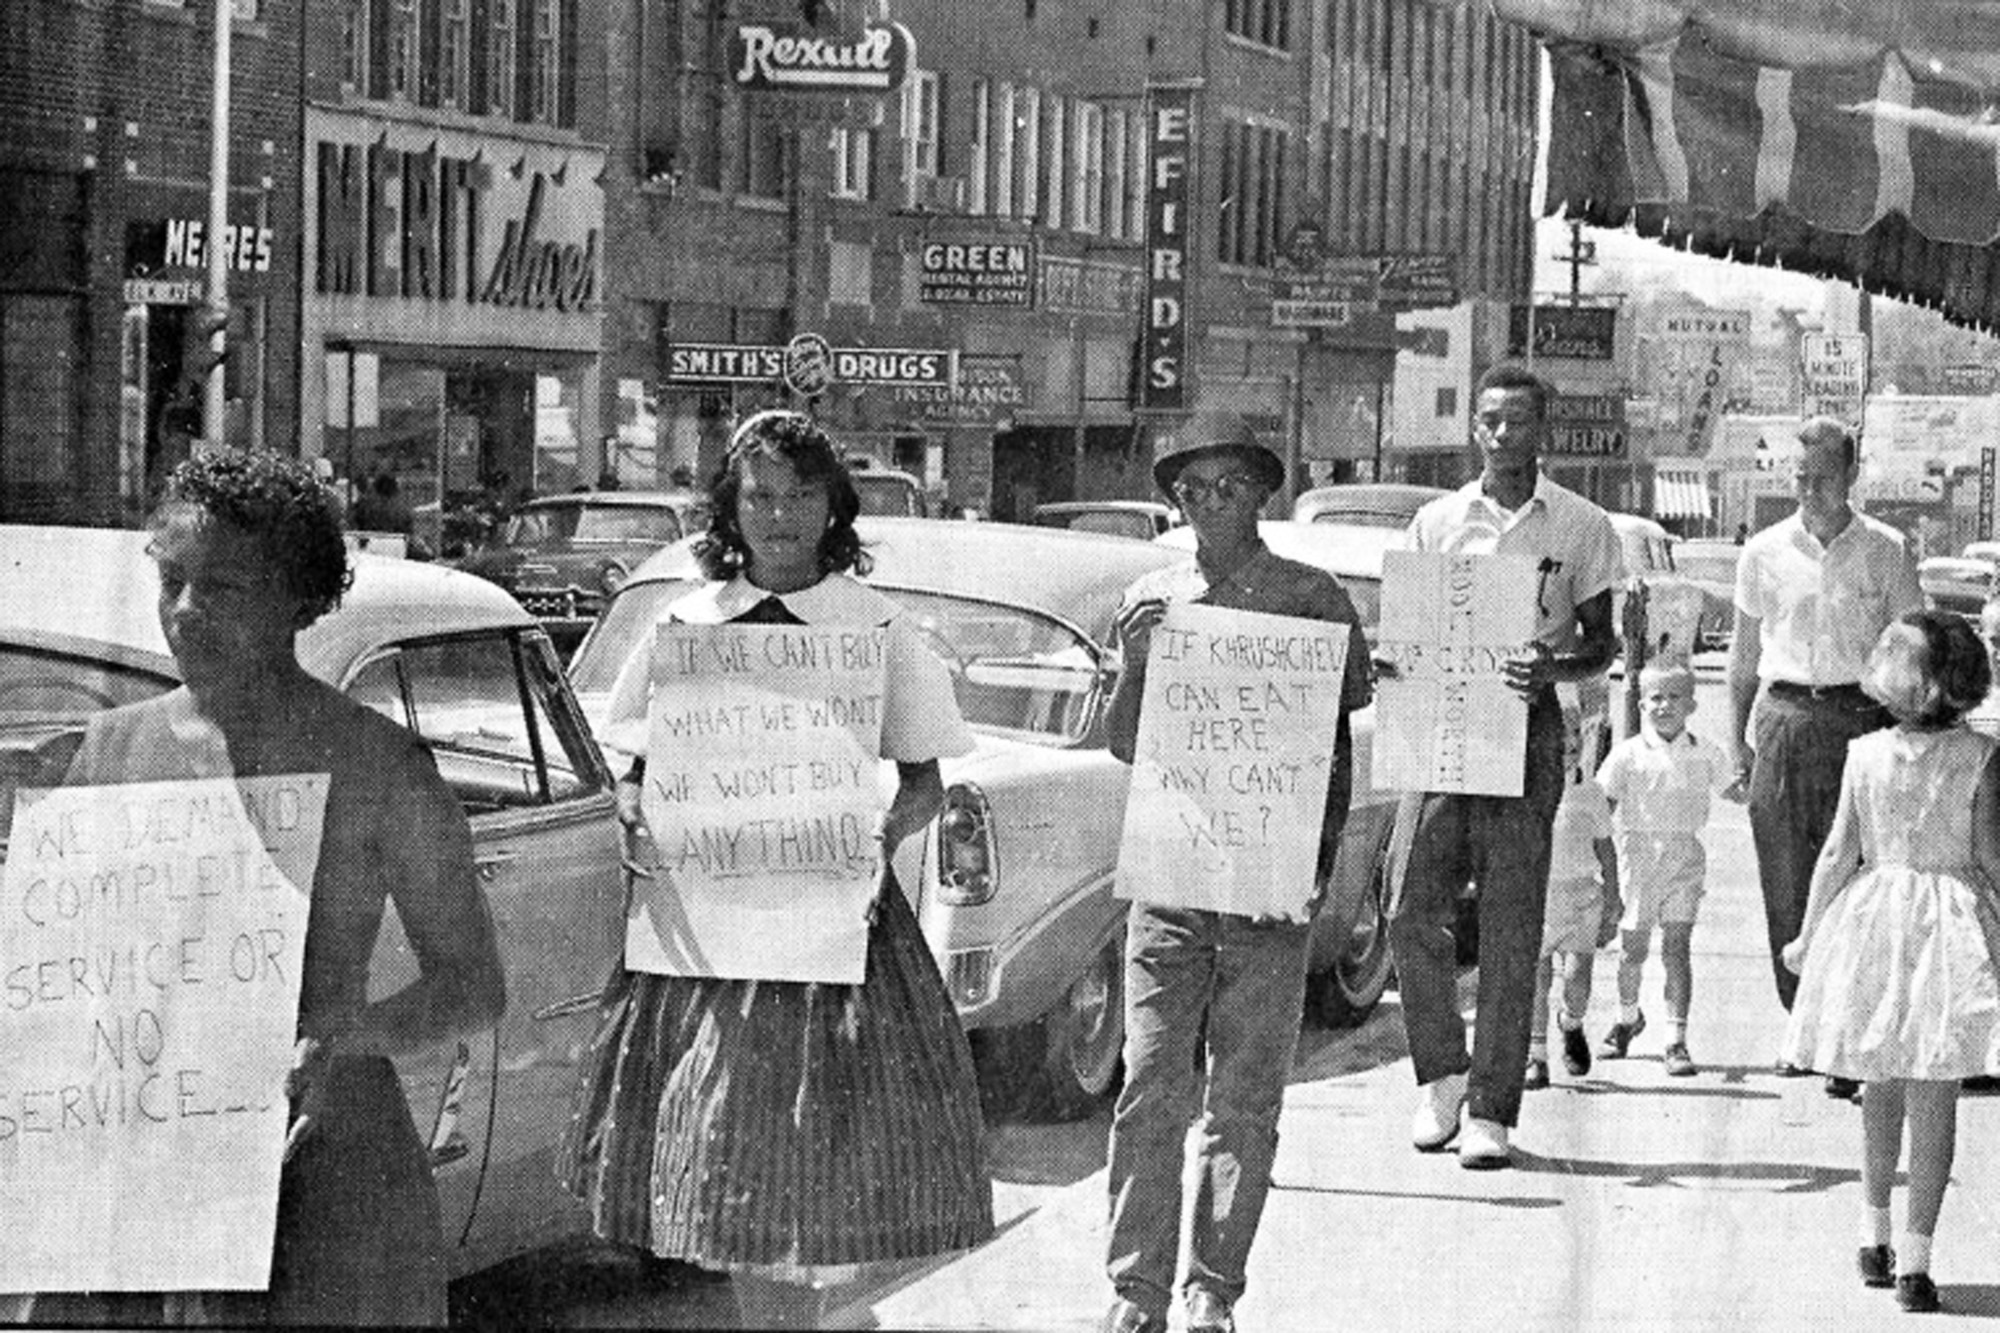 Friendship College students protest in front of McCrory's in Rock Hill in 1960.